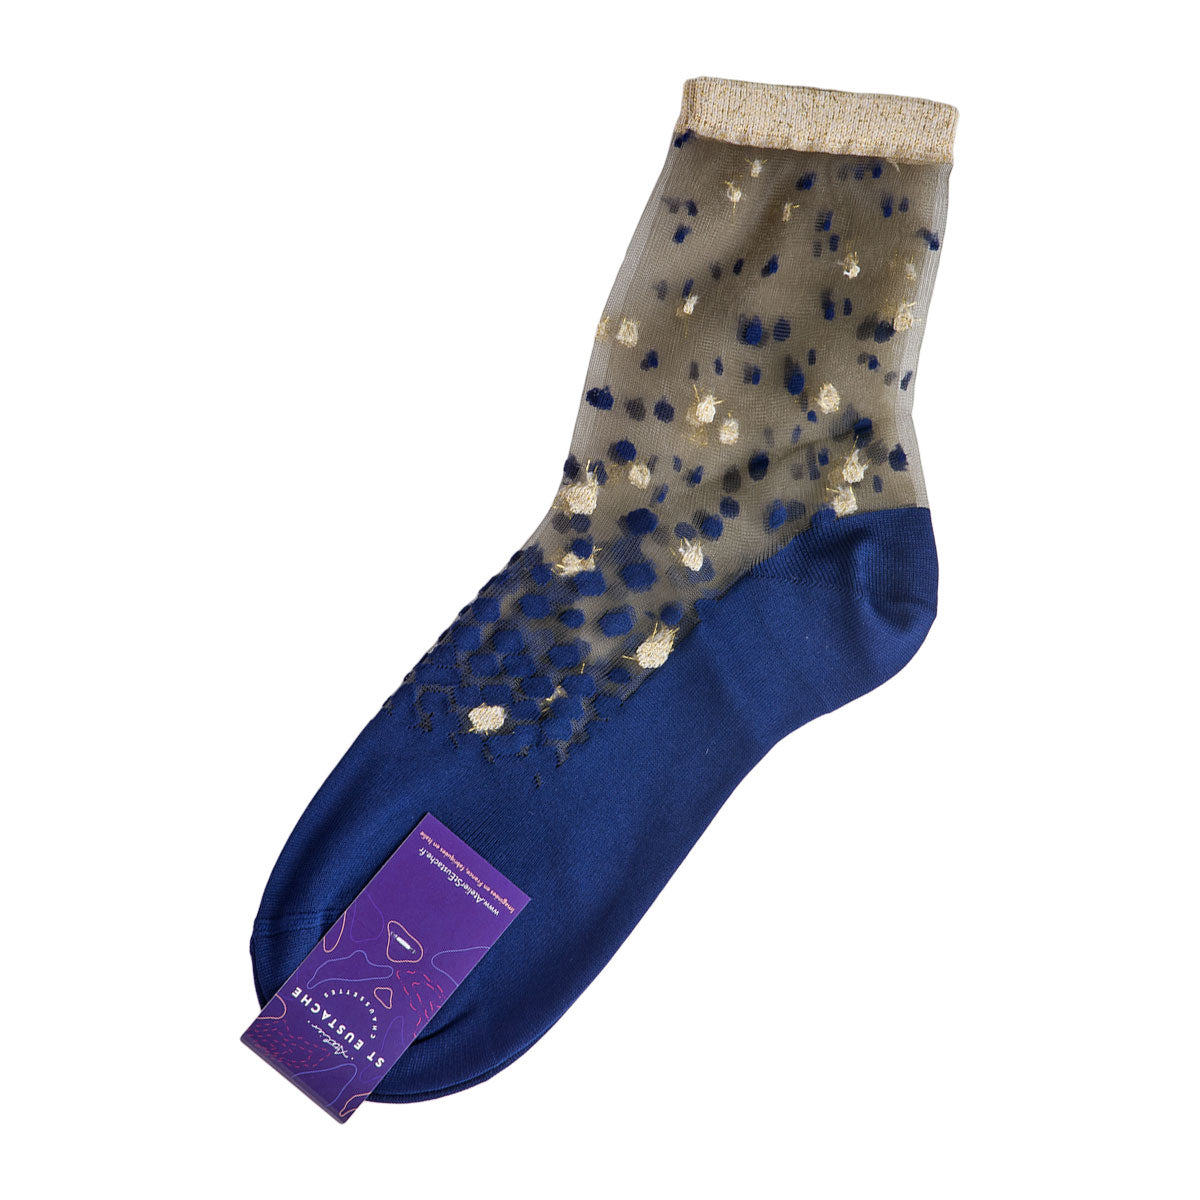 Nakameguro Blue and Gold Transparent Socks